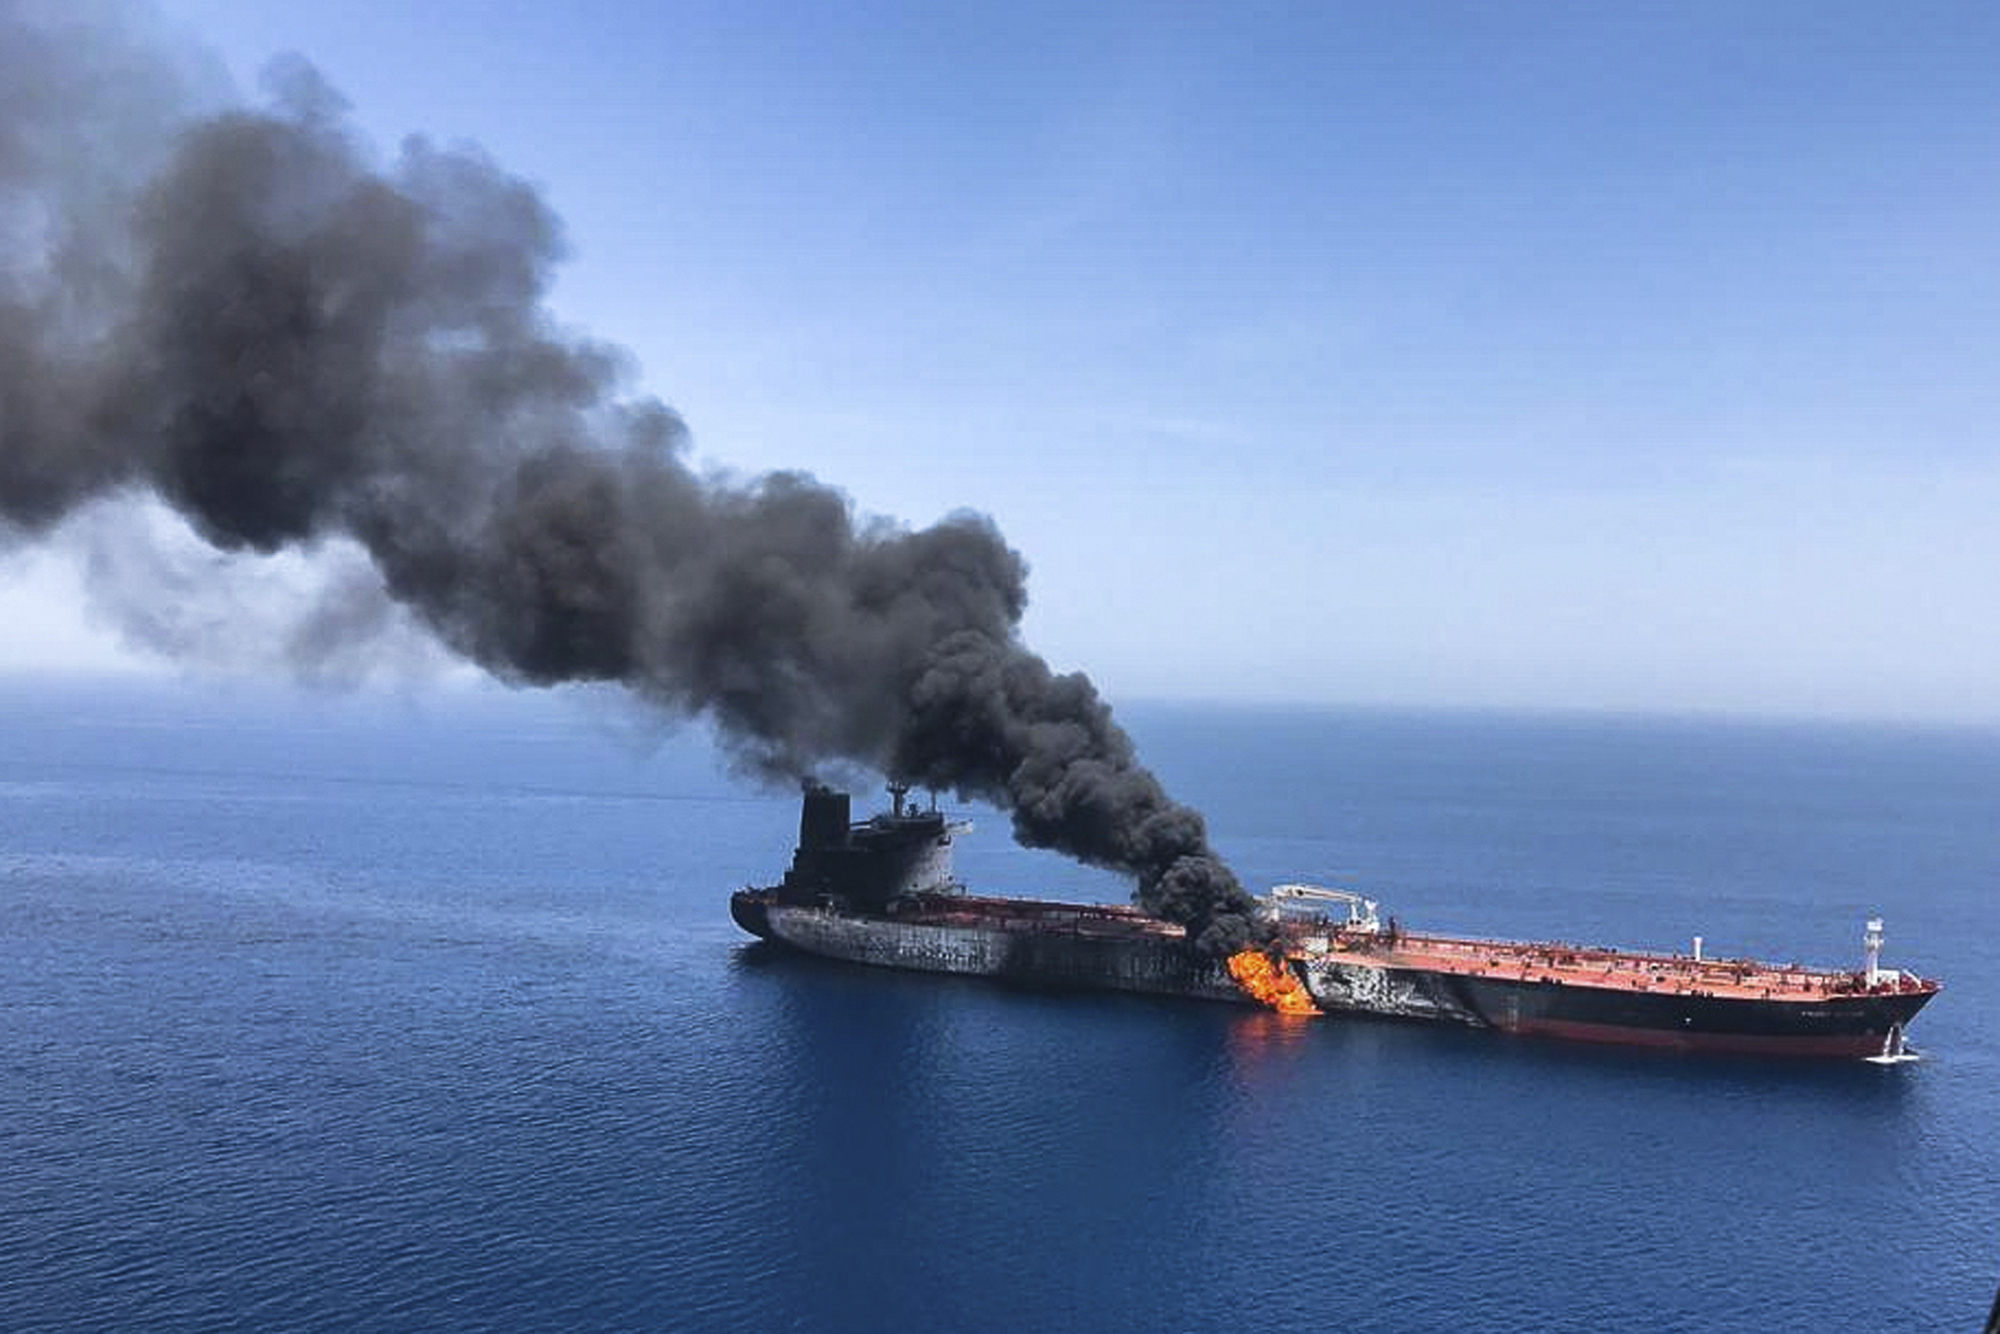 An oil tanker on fire in the sea off Oman on Thursday, June 13, 2019.